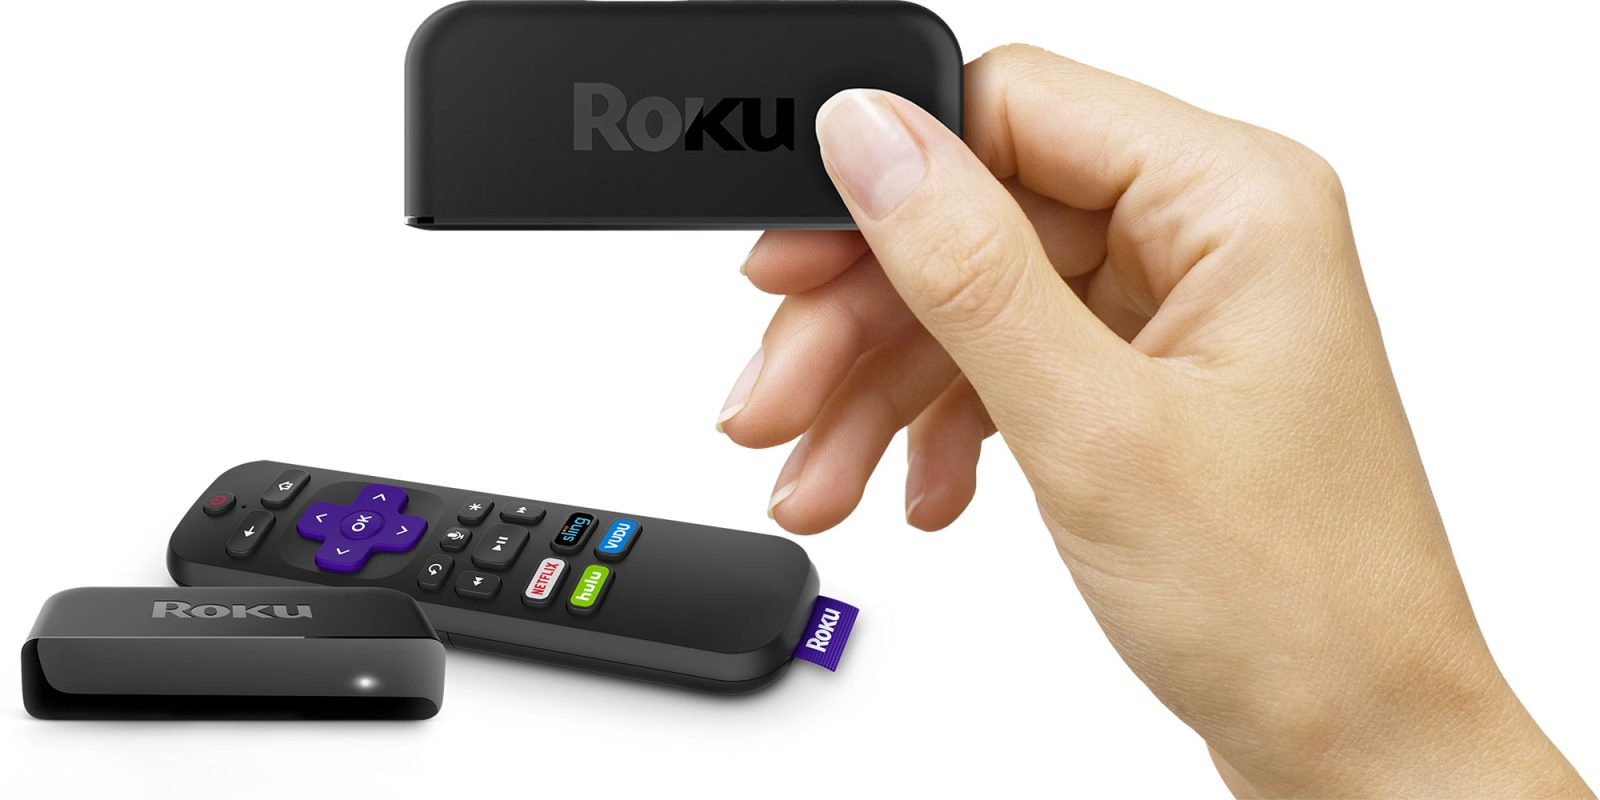 Roku Premiere+ supports 4K HDR10 streaming at $39 shipped (Reg. $50)